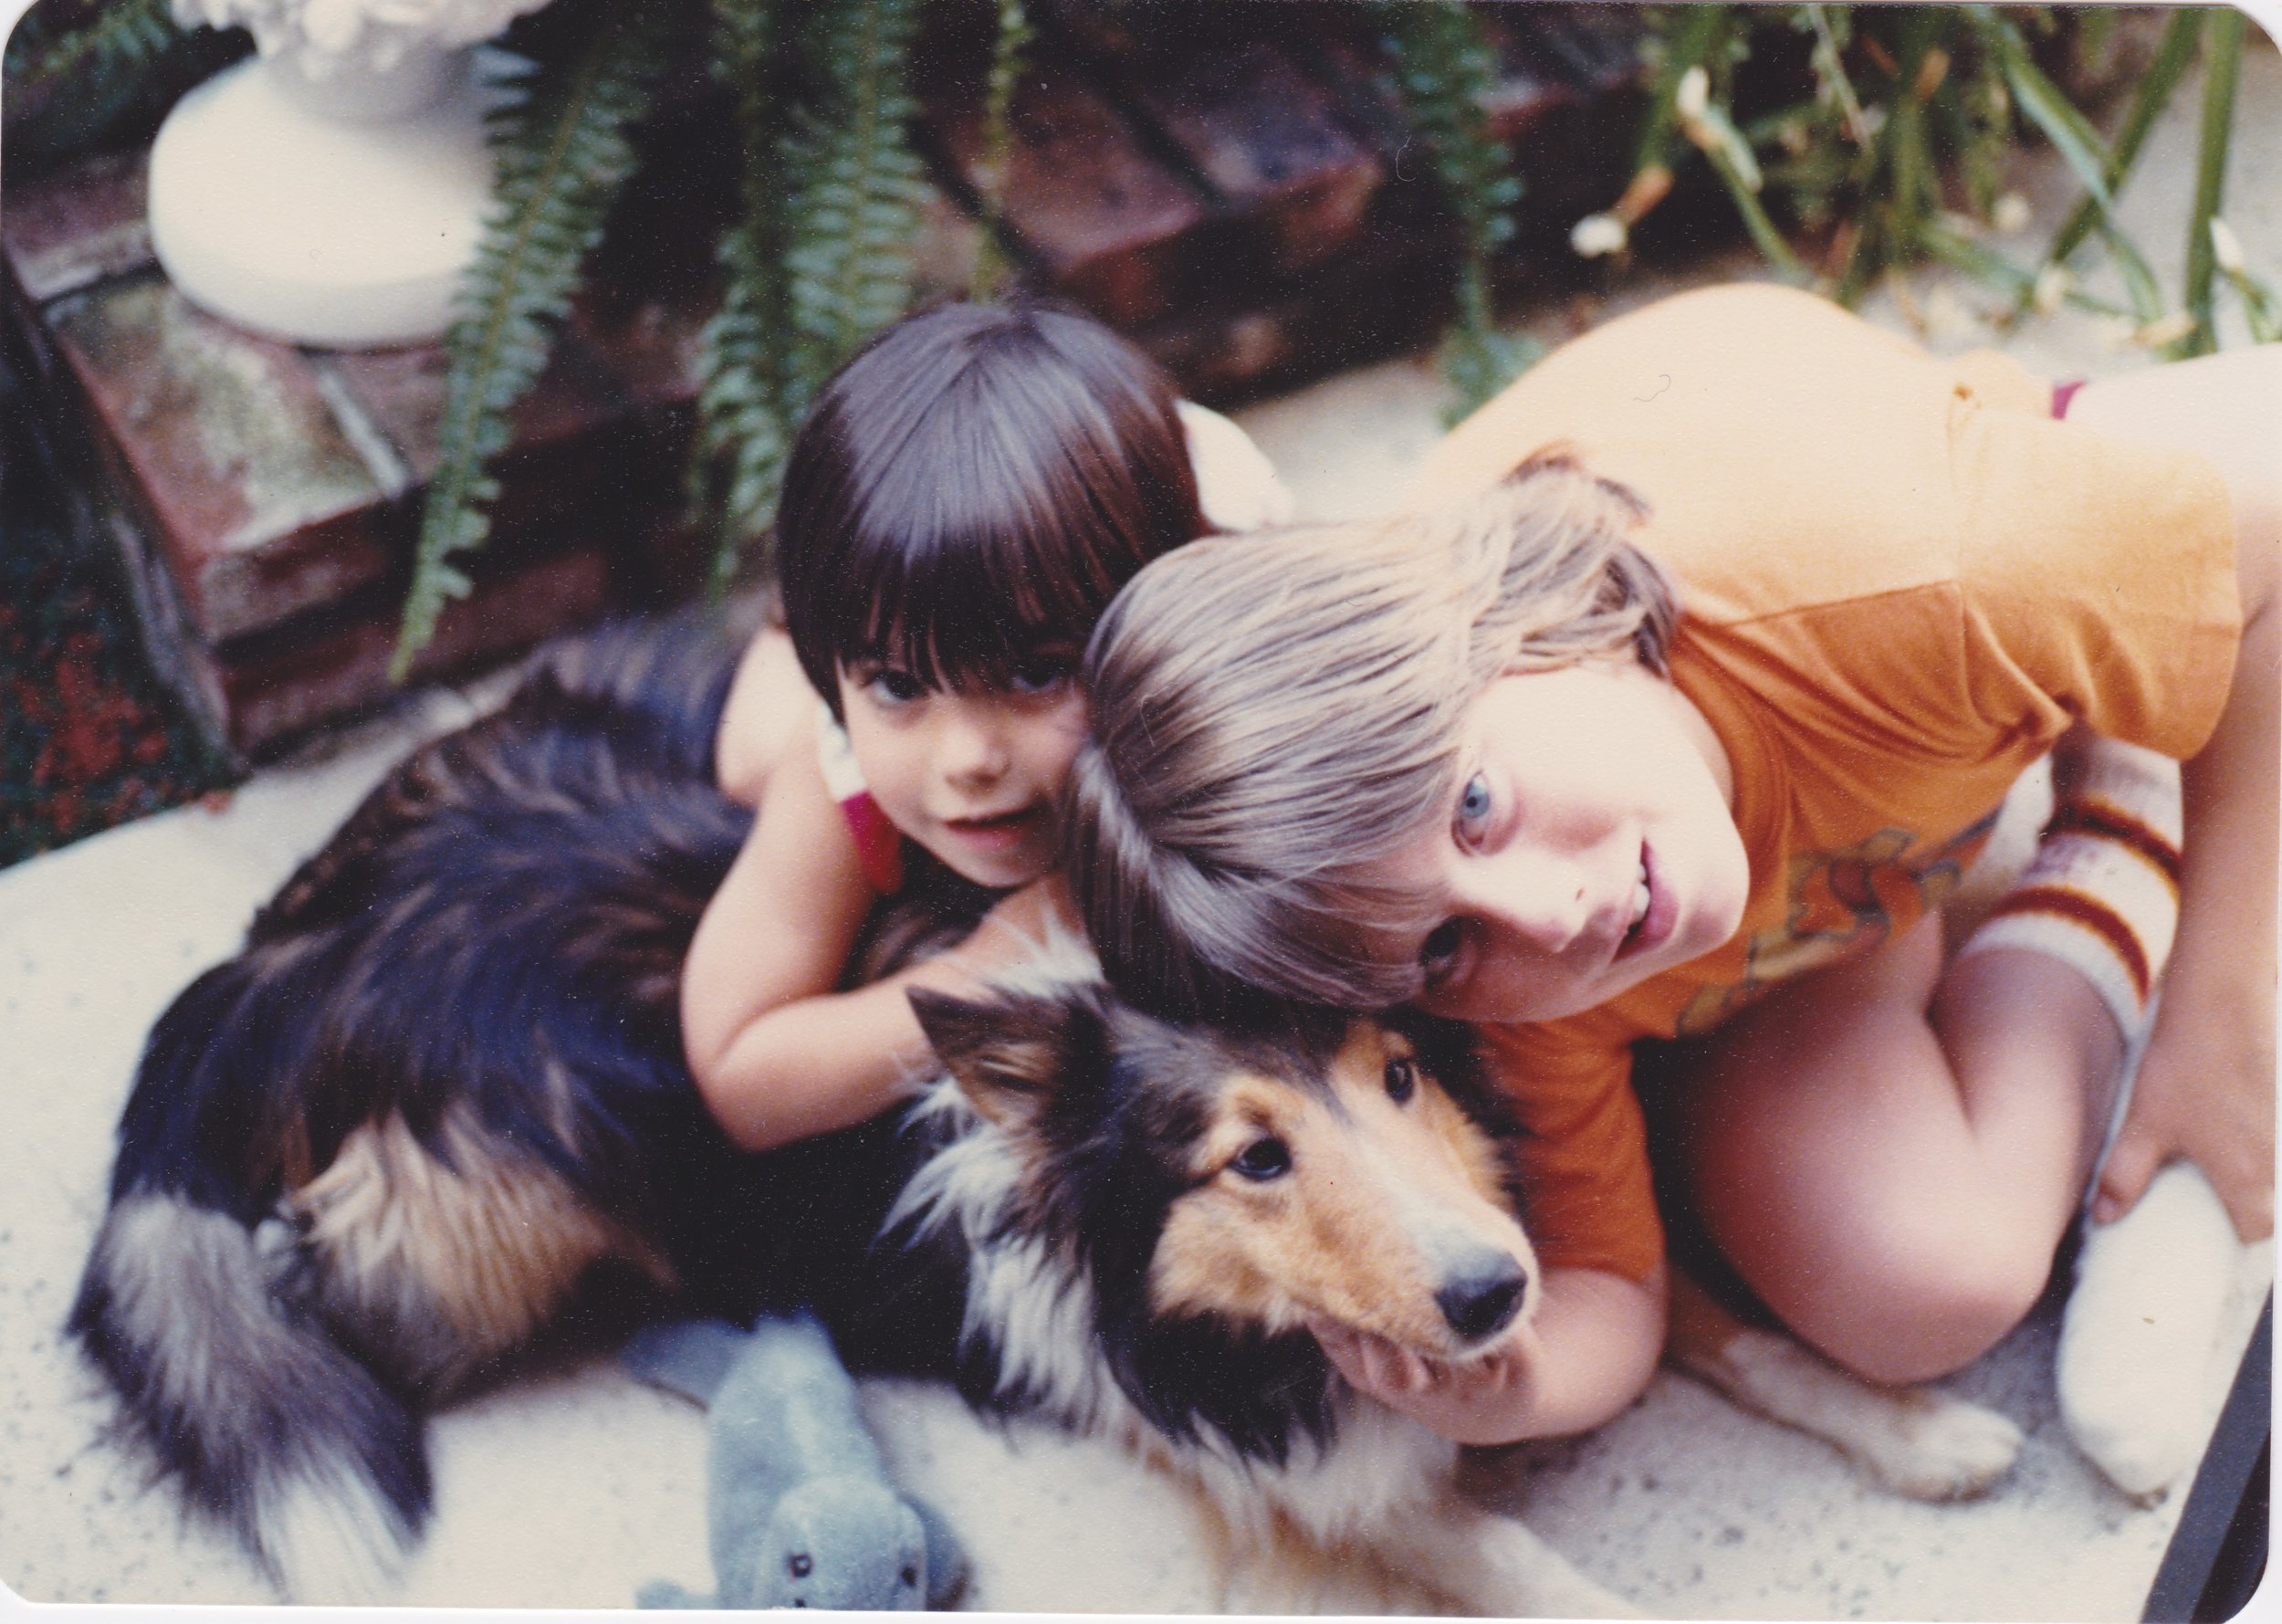 Lil Amanda with her brother Chris and their dog Prince